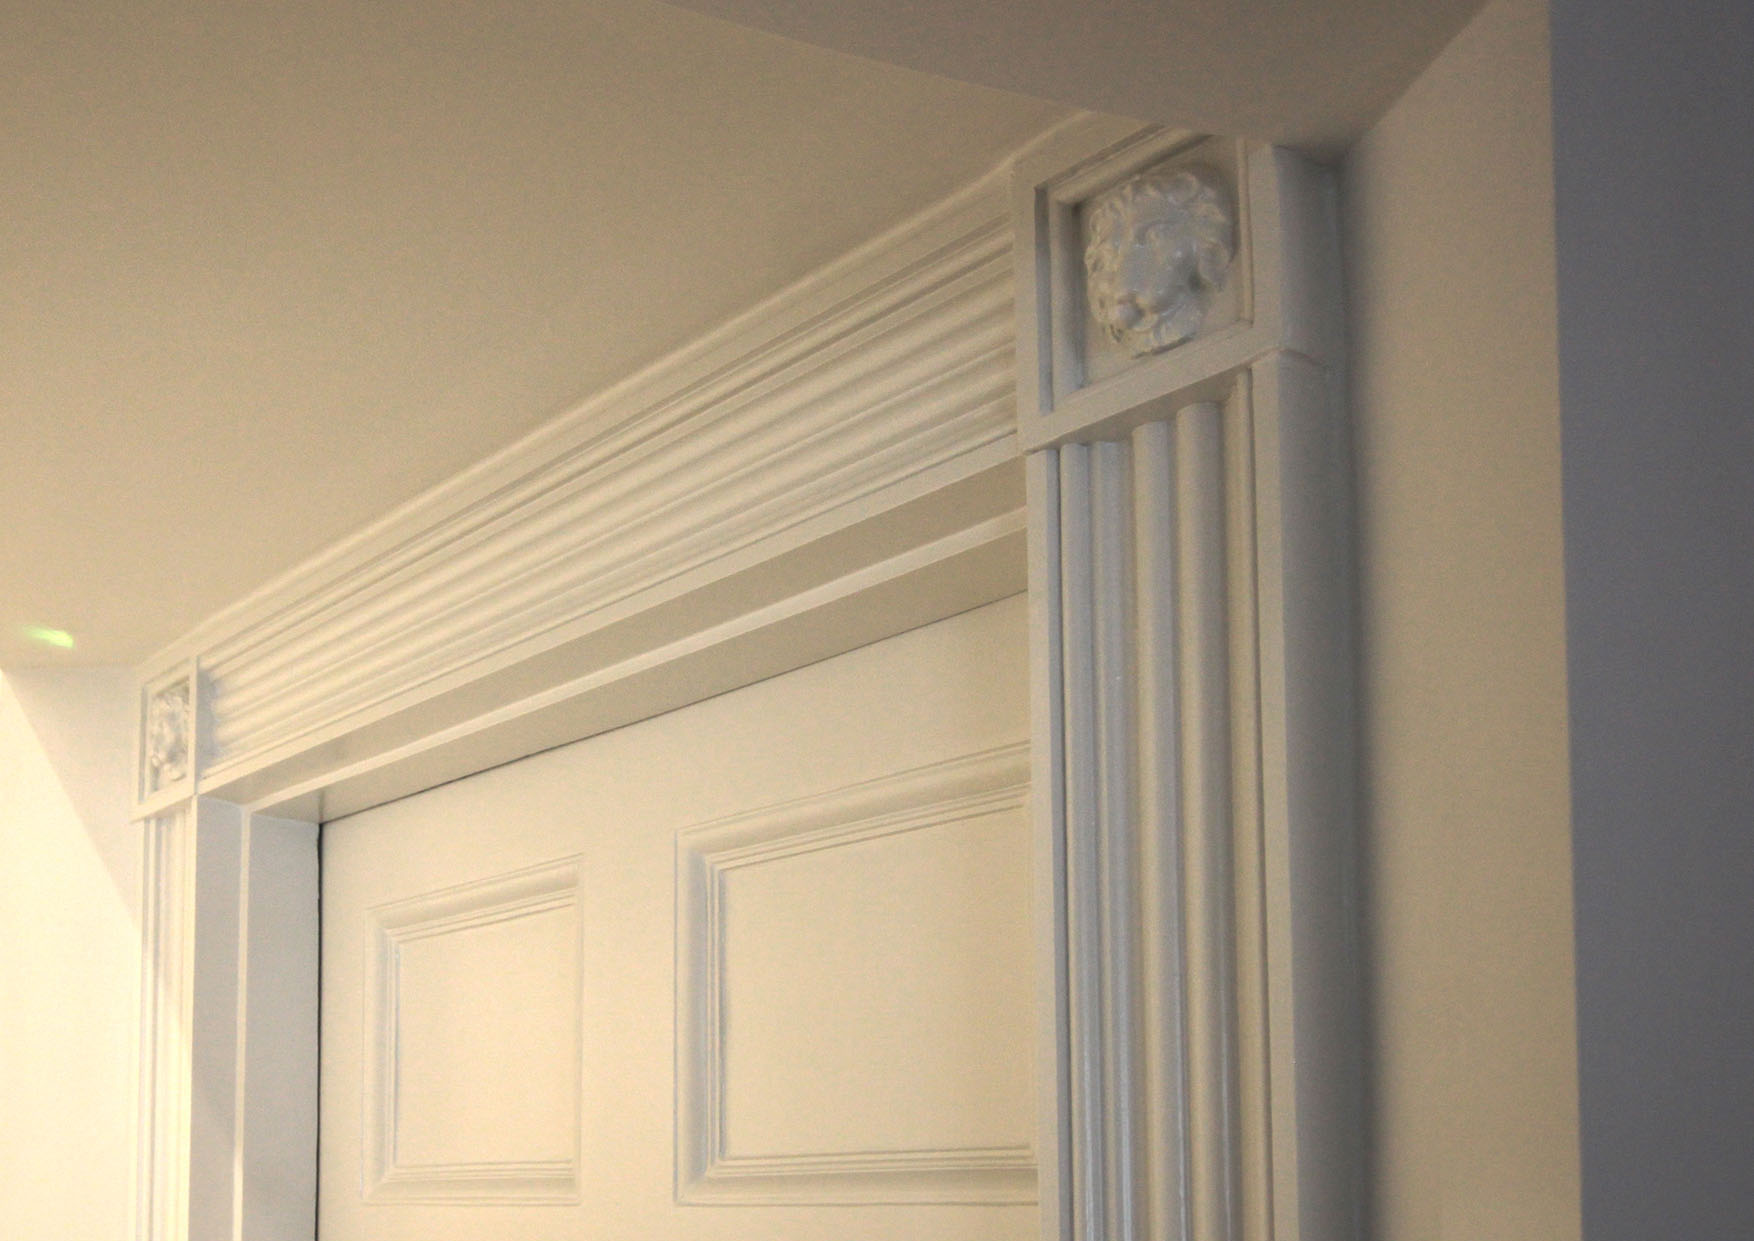 Conway_09a_architrave detail